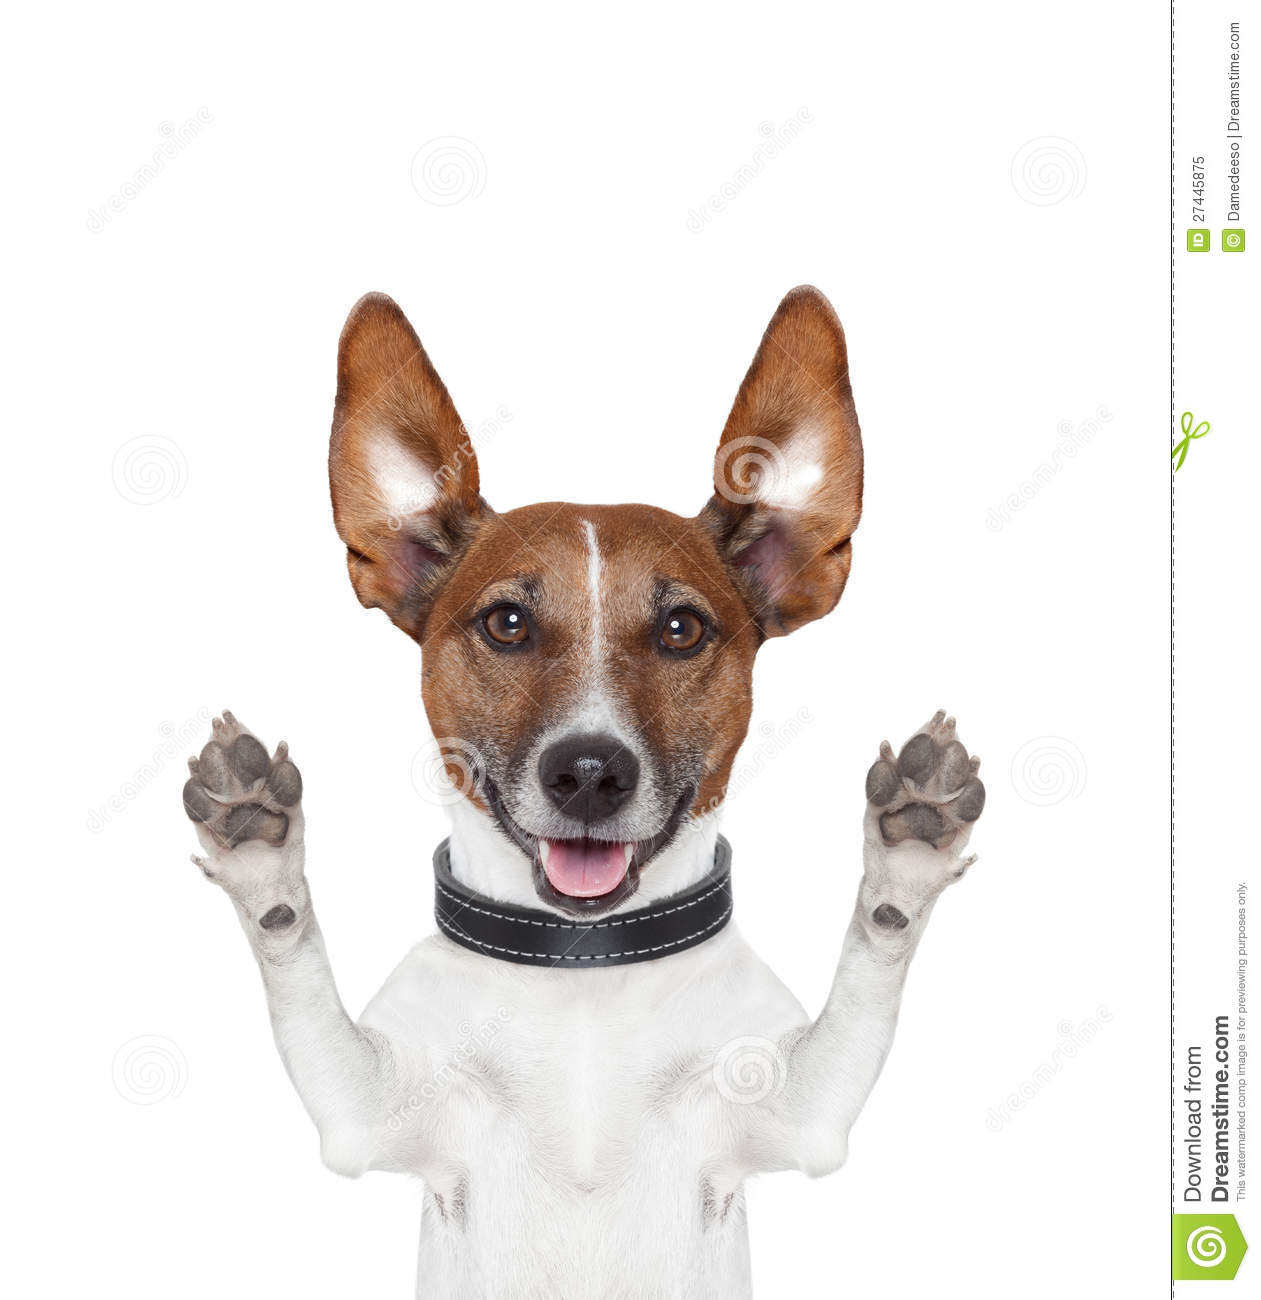 Silly Crazy Paws Up Dog Royalty Free Stock Photo   Image  27445875